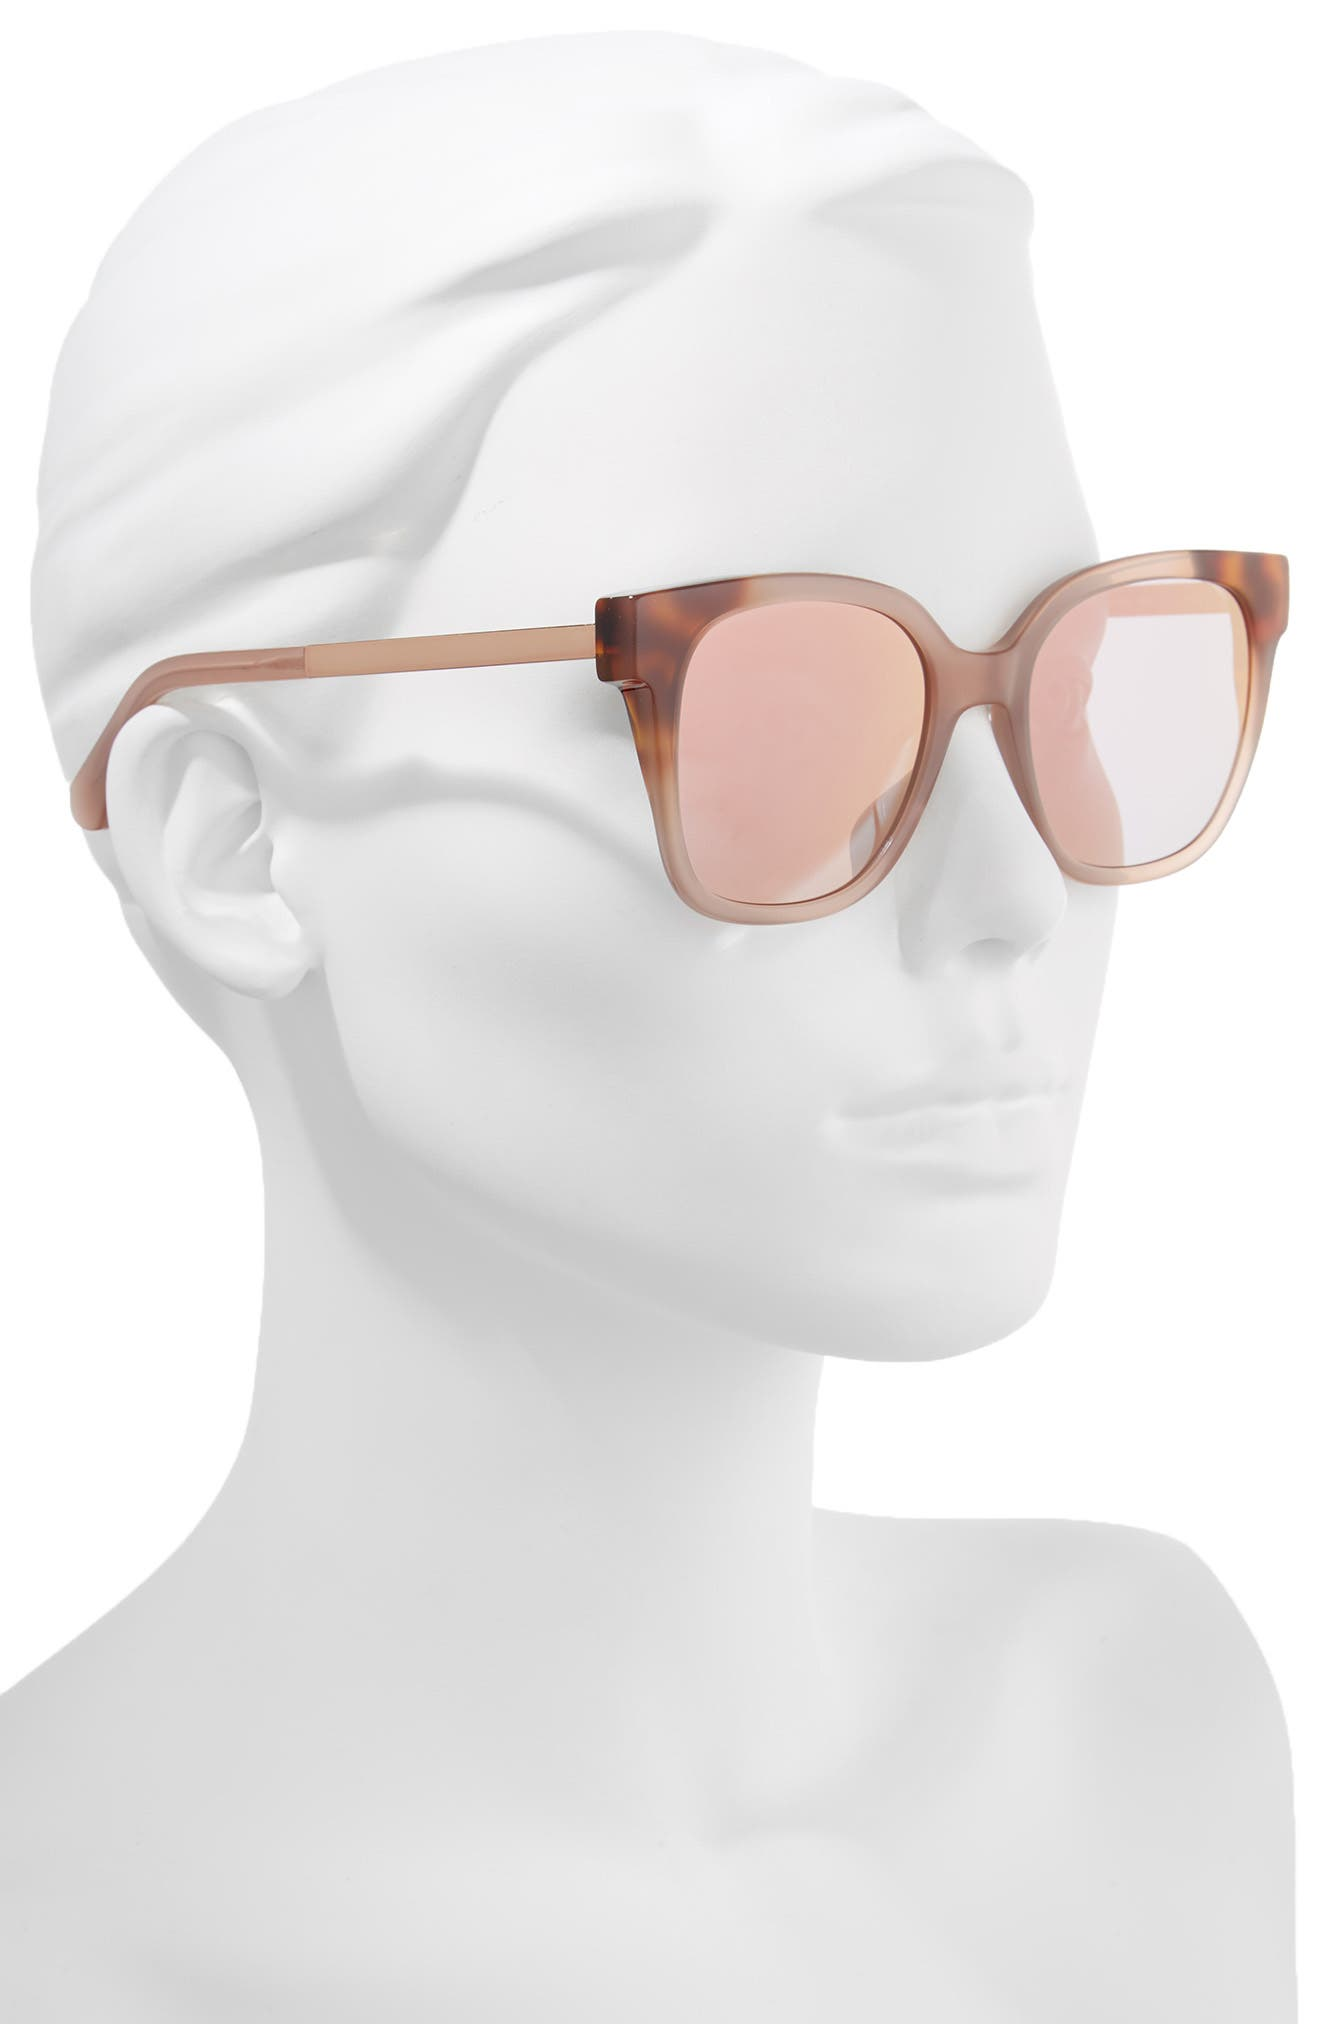 caelyns basic 52mm sunglasses,                             Alternate thumbnail 2, color,                             Nude/ Havana/ Honey